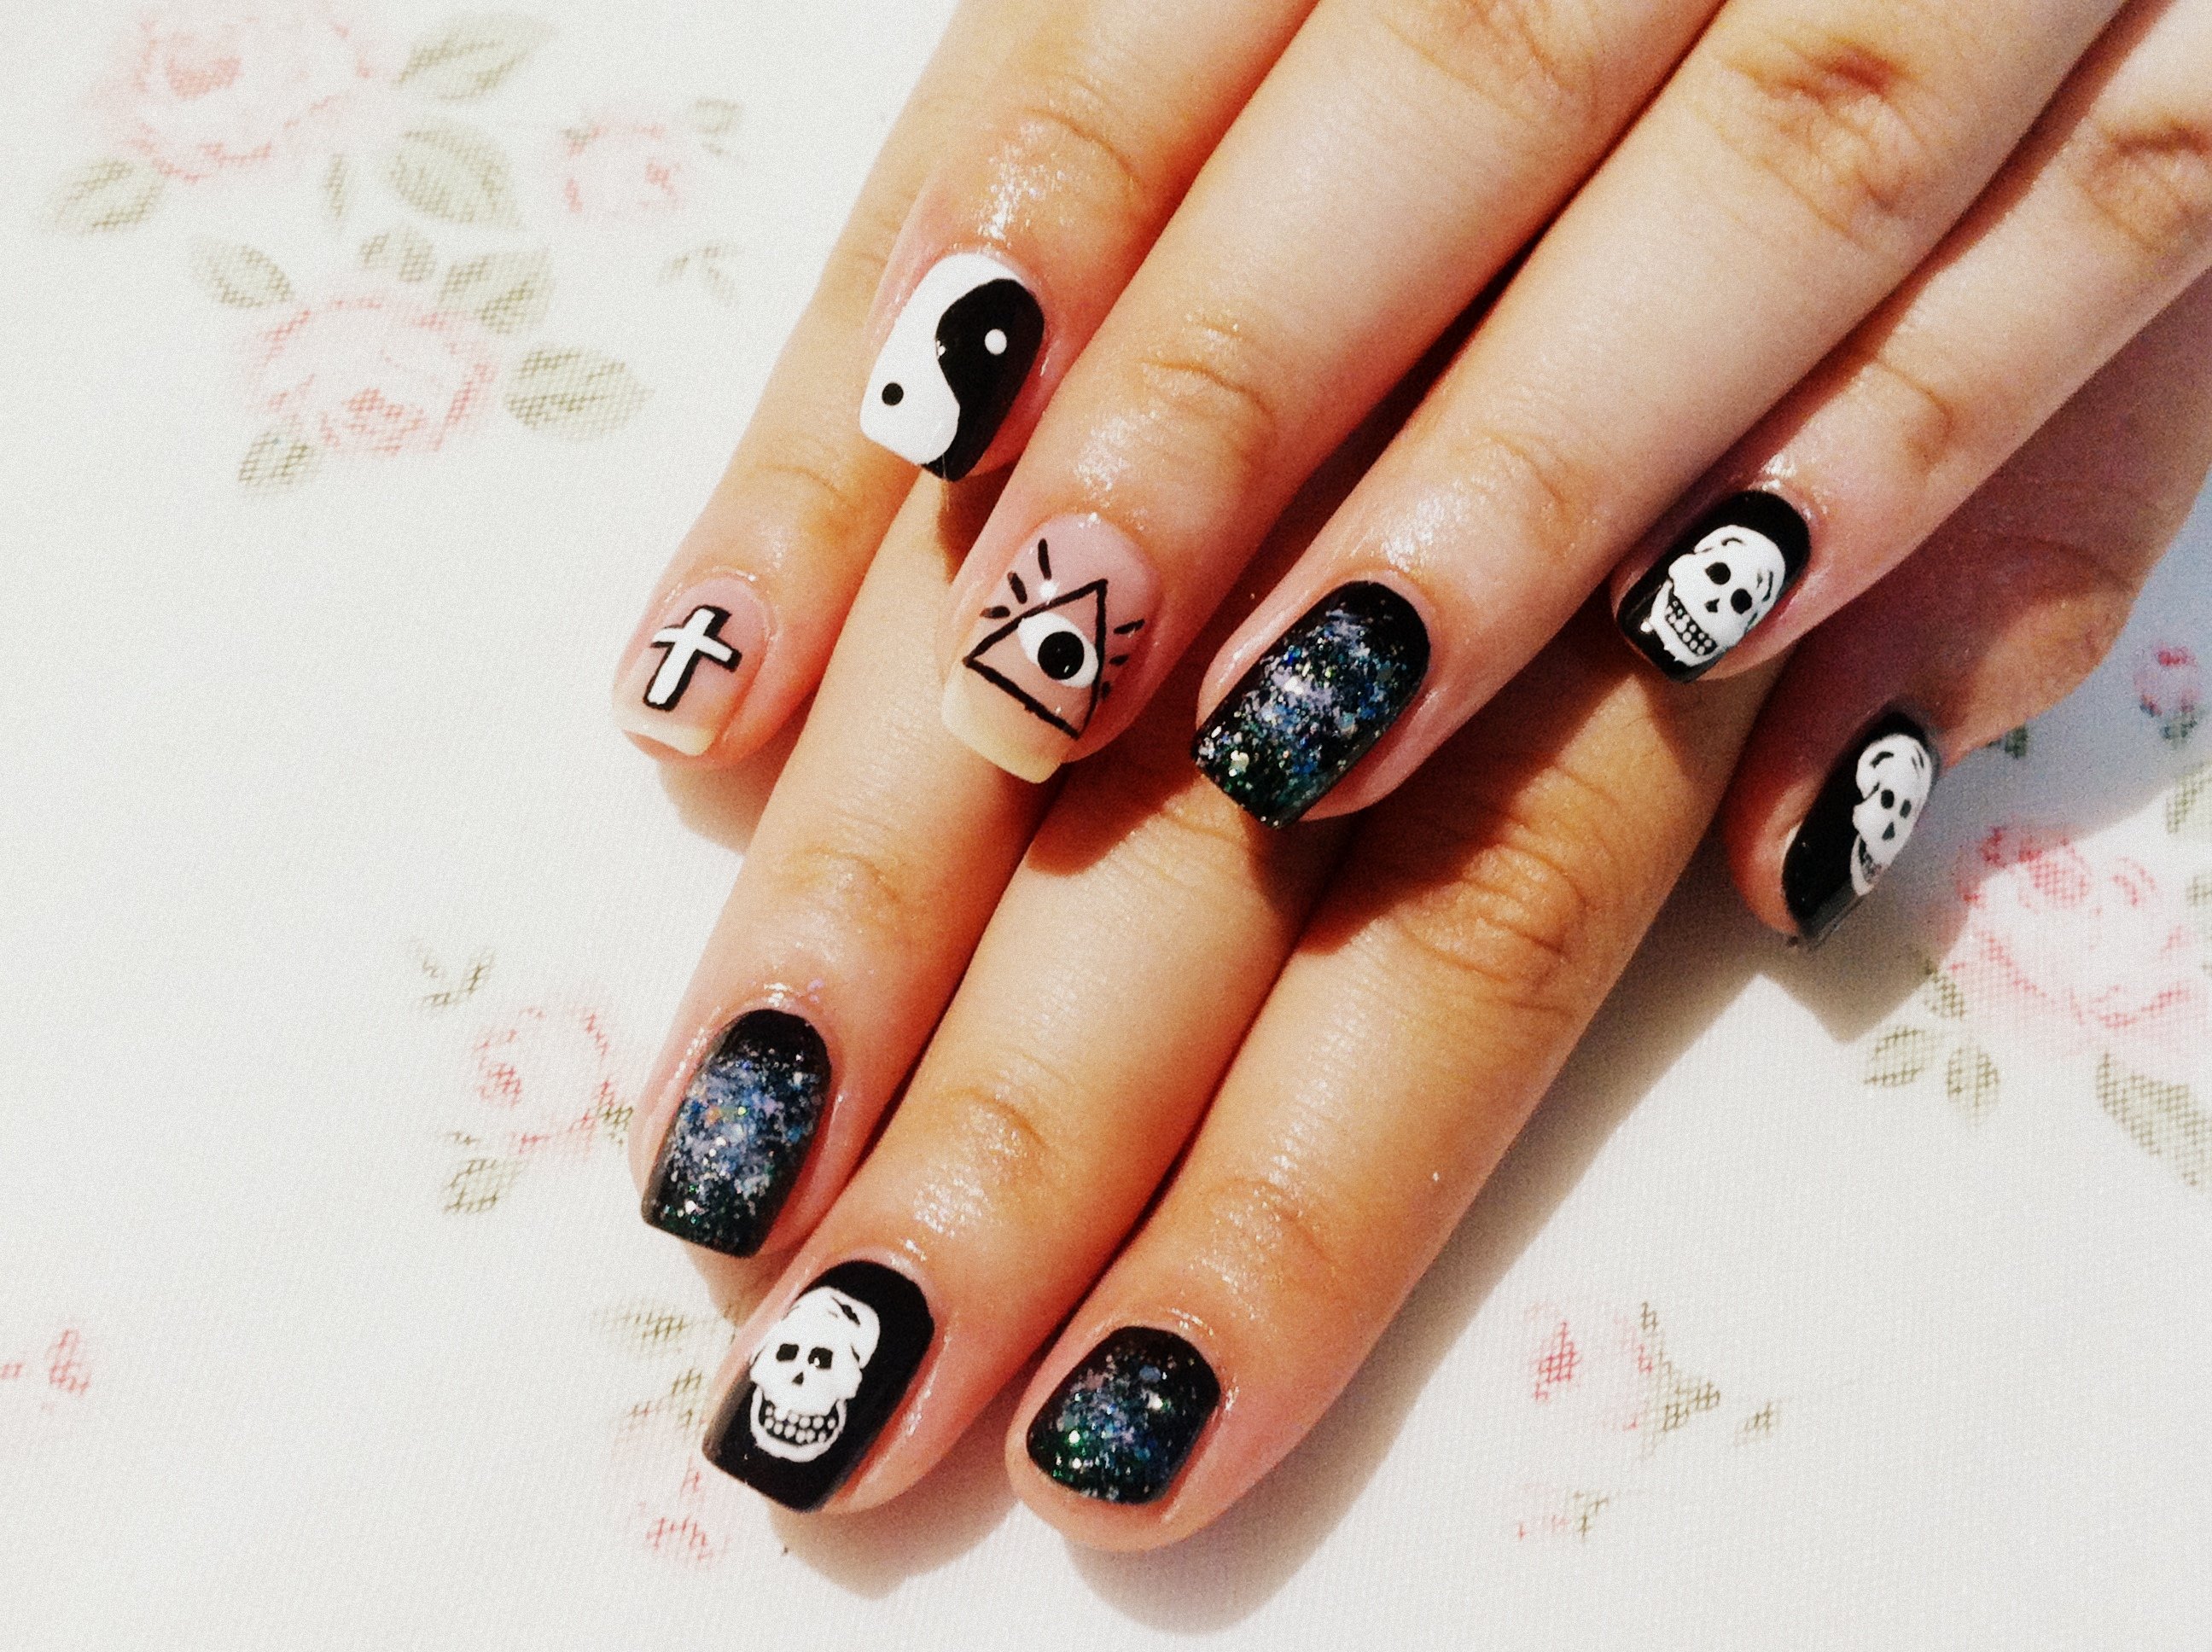 Symbol nail designs images nail art and nail design ideas symbol nail designs gallery nail art and nail design ideas symbol nail designs image collections nail prinsesfo Gallery